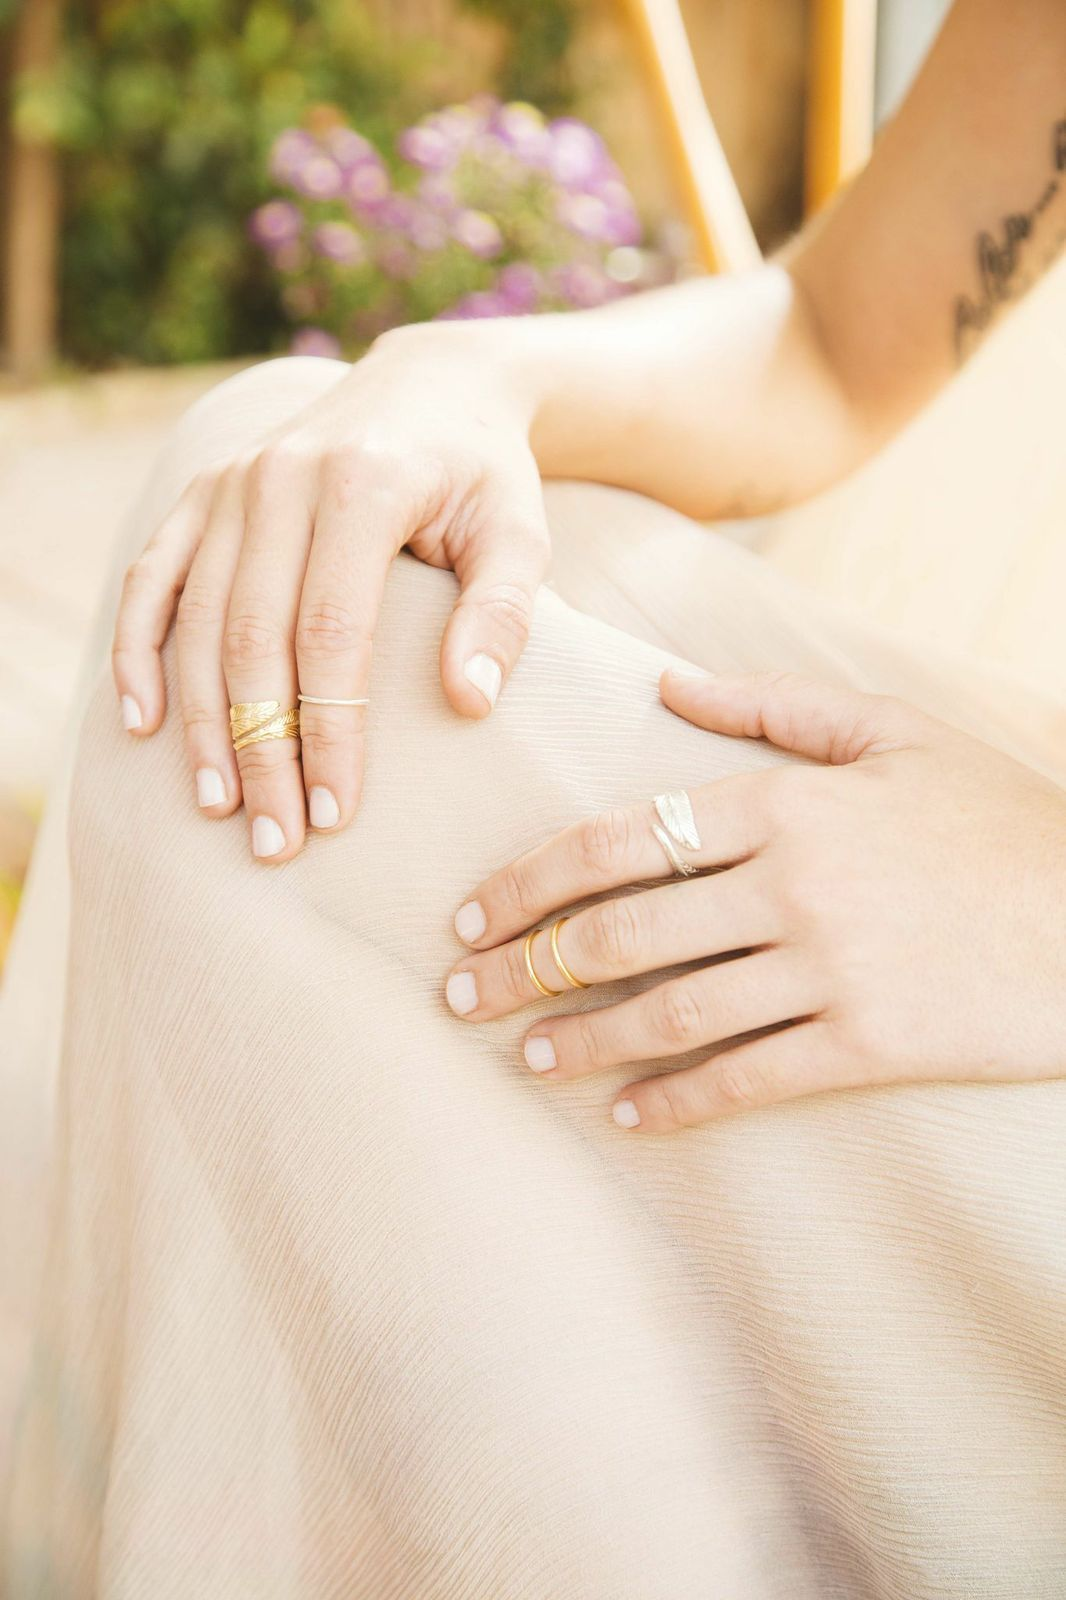 Image of models hands while wearing the gold Feather Ring.